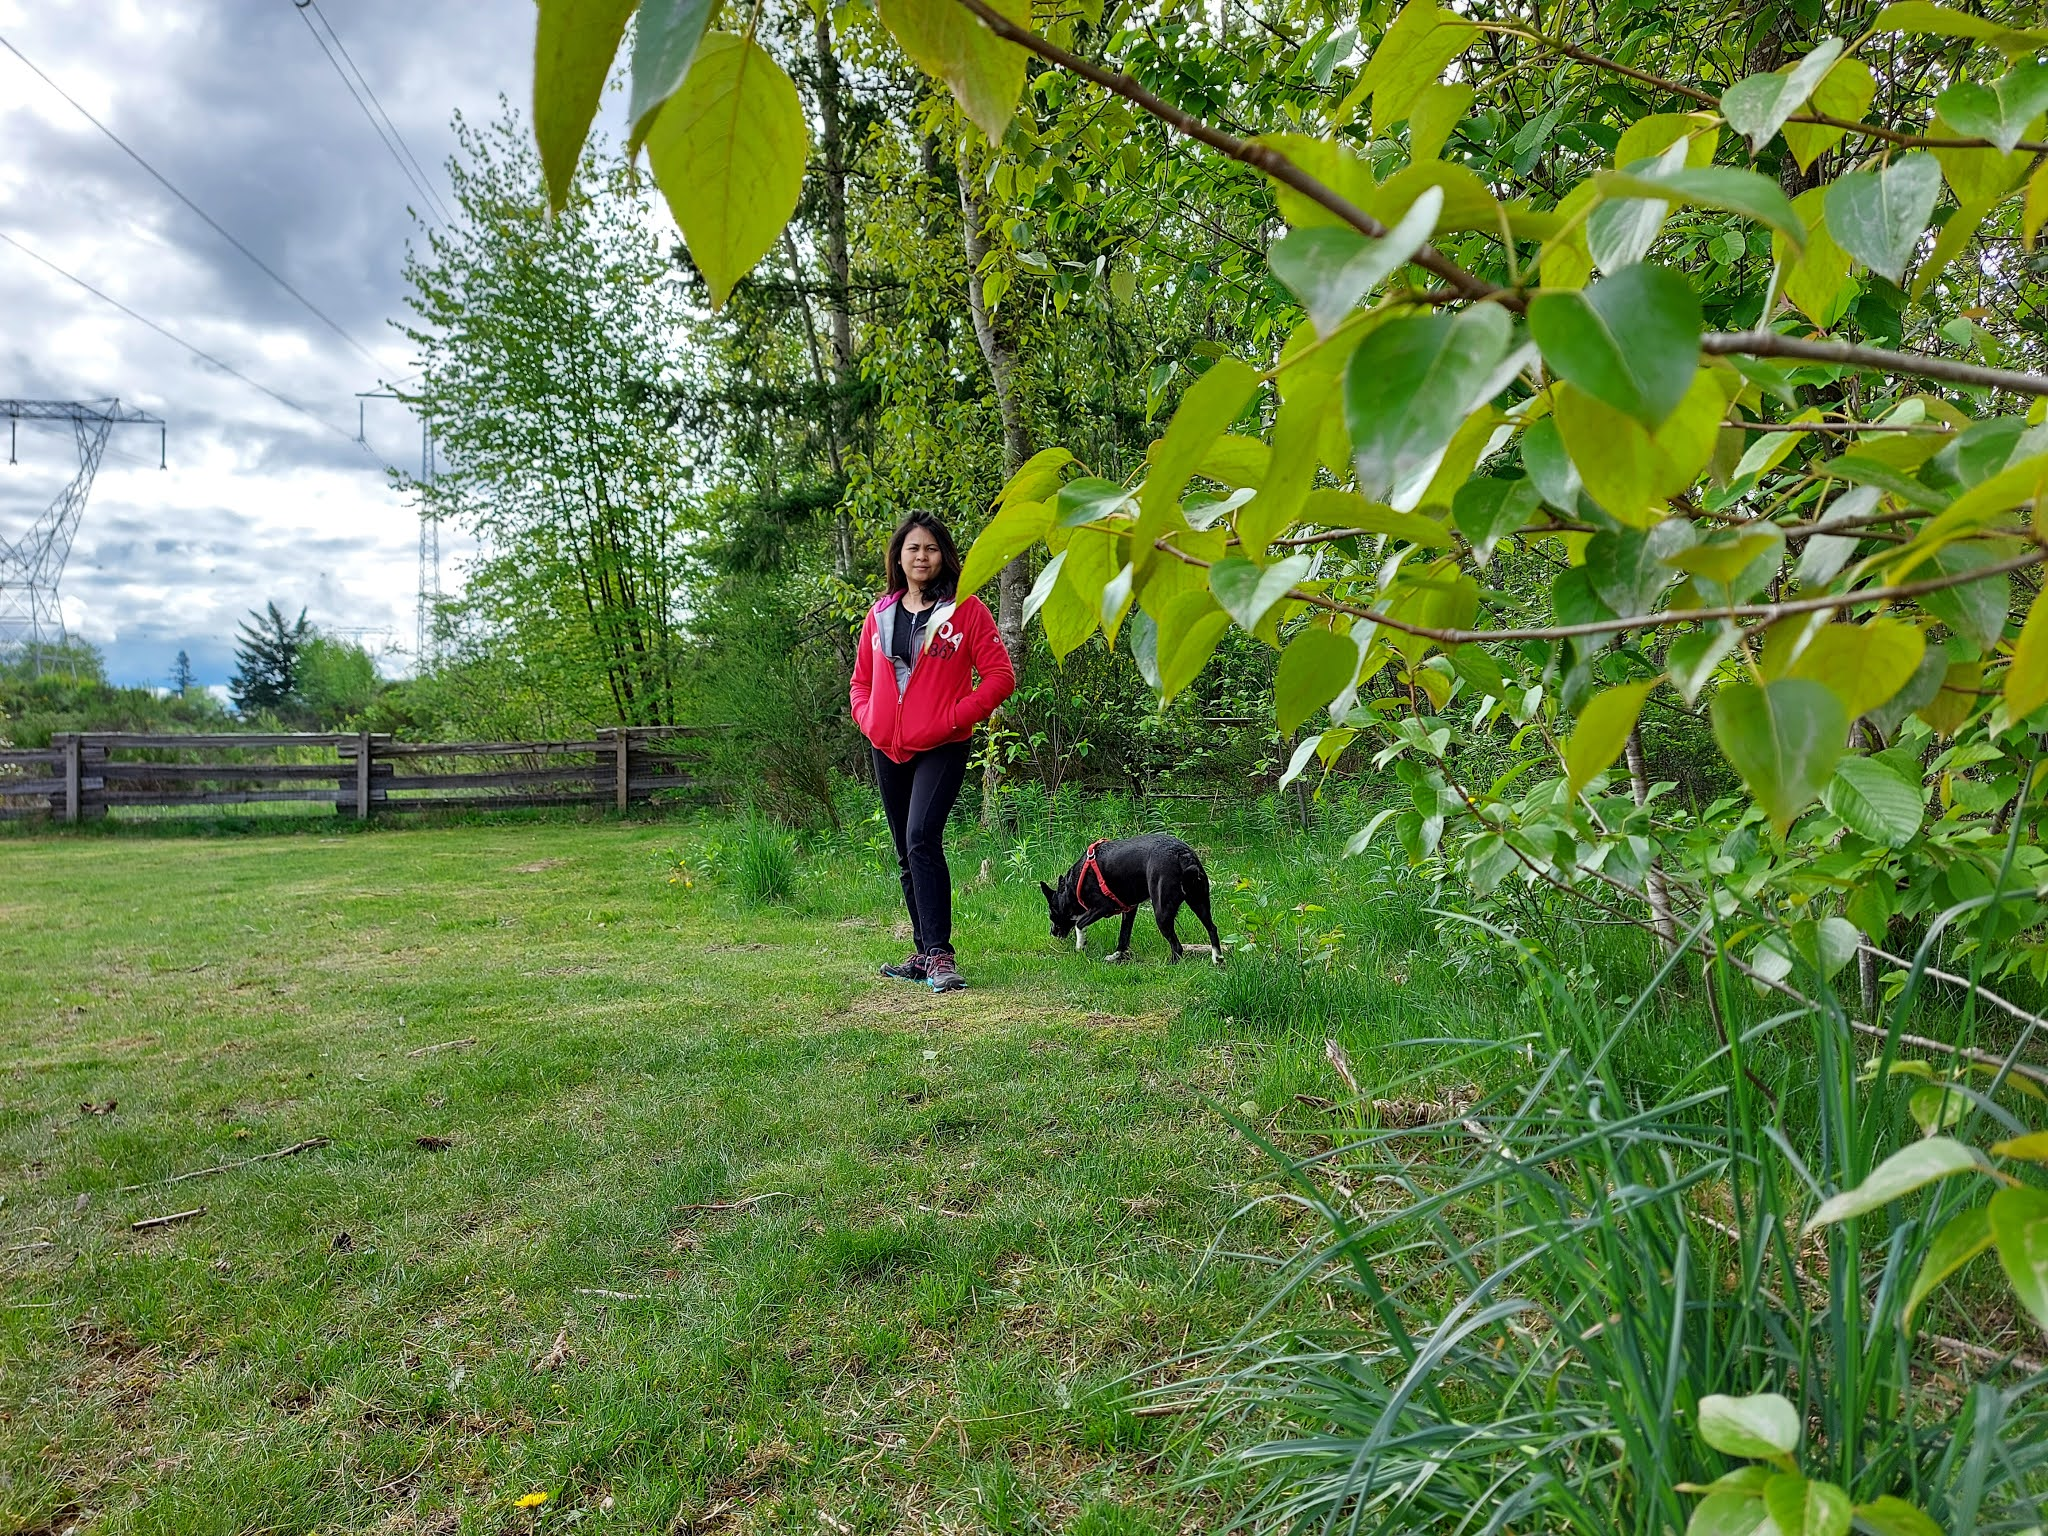 At the clearbrook dogs park